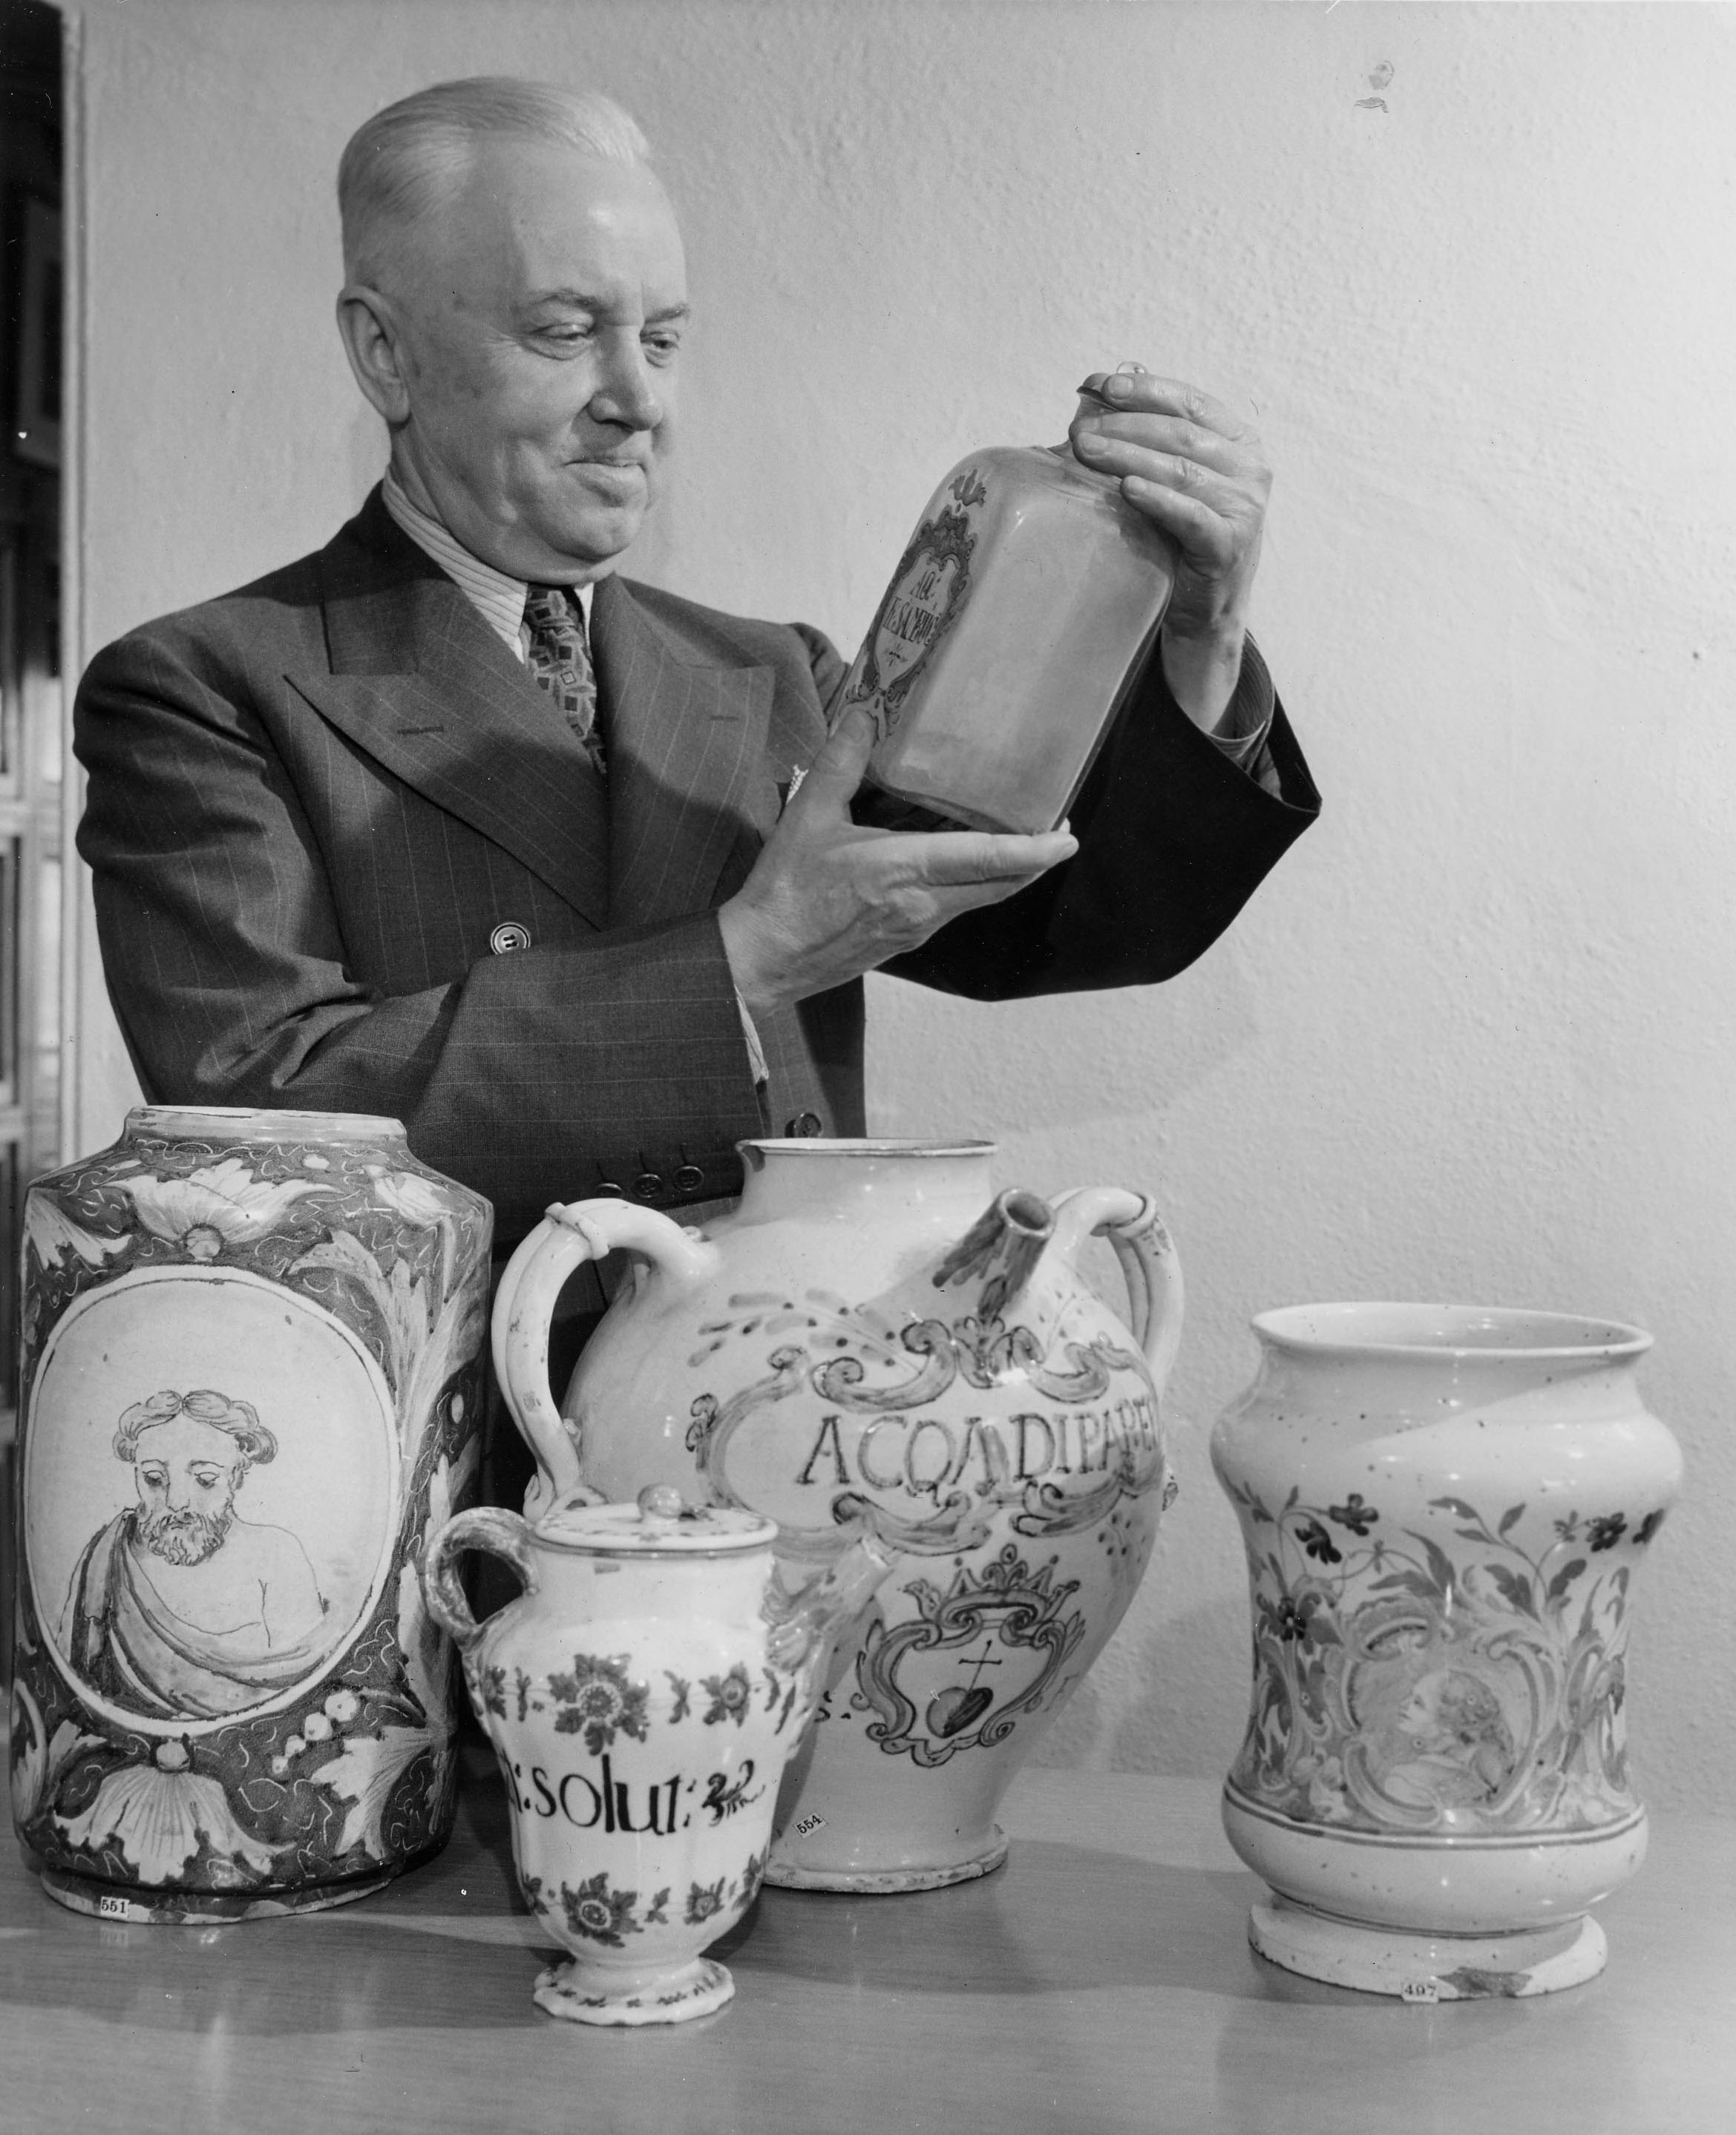 Charles Whitebread Examines Jars from the Squibb Collection